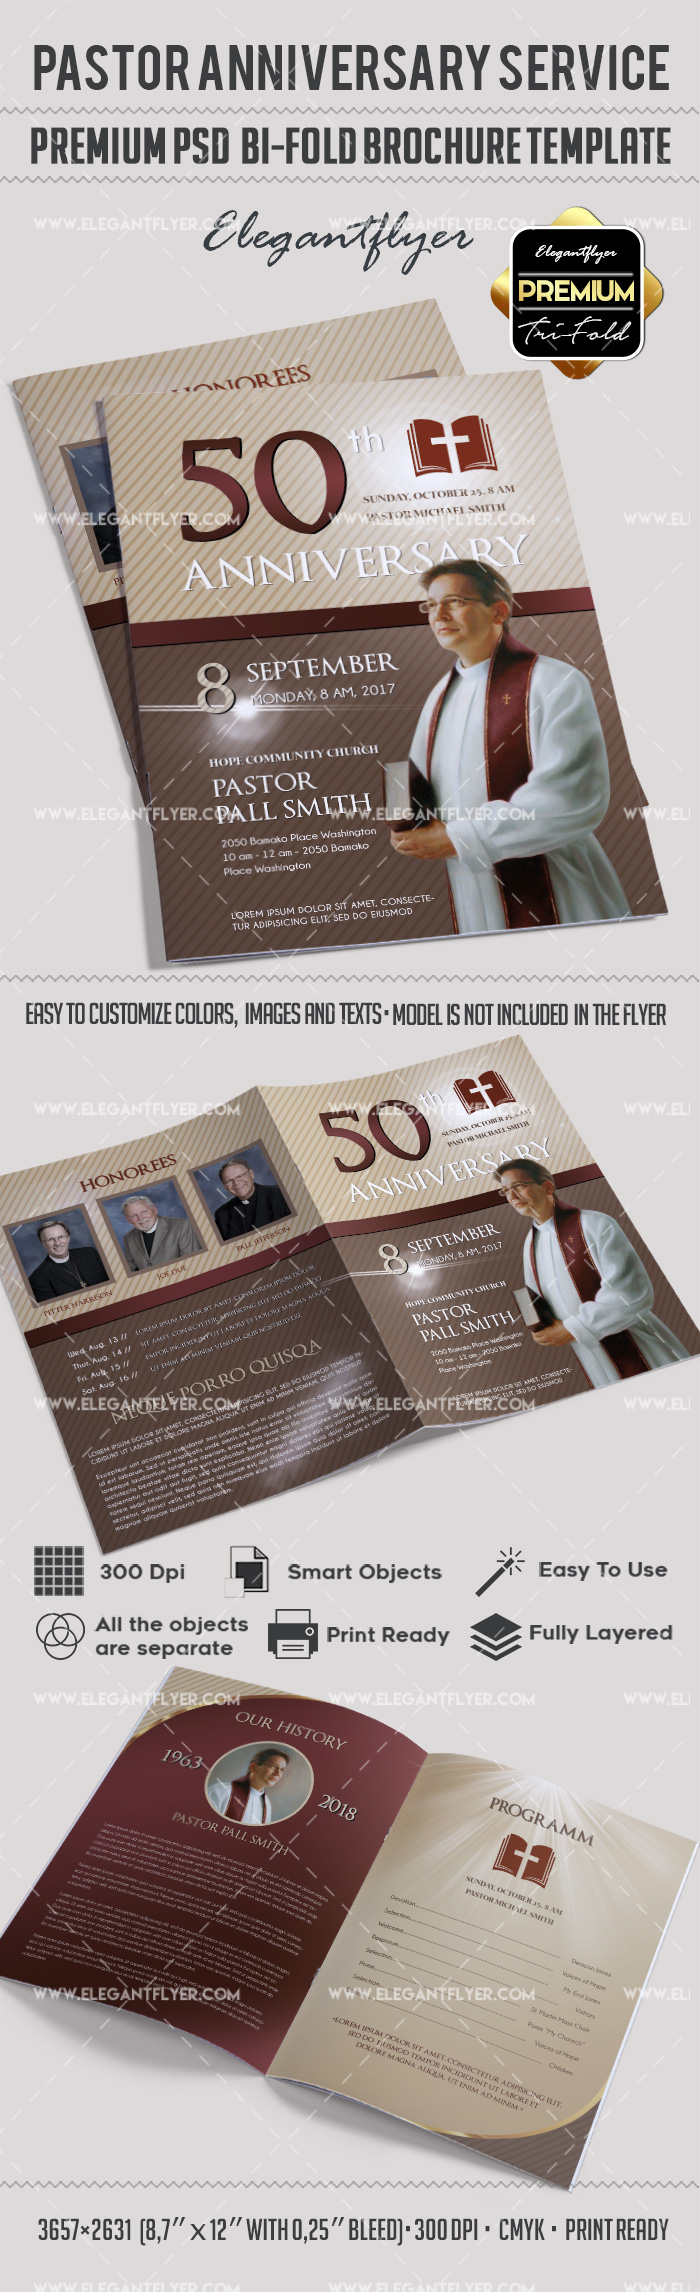 Pastor anniversary service in psd by elegantflyer for 3 fold brochure template psd